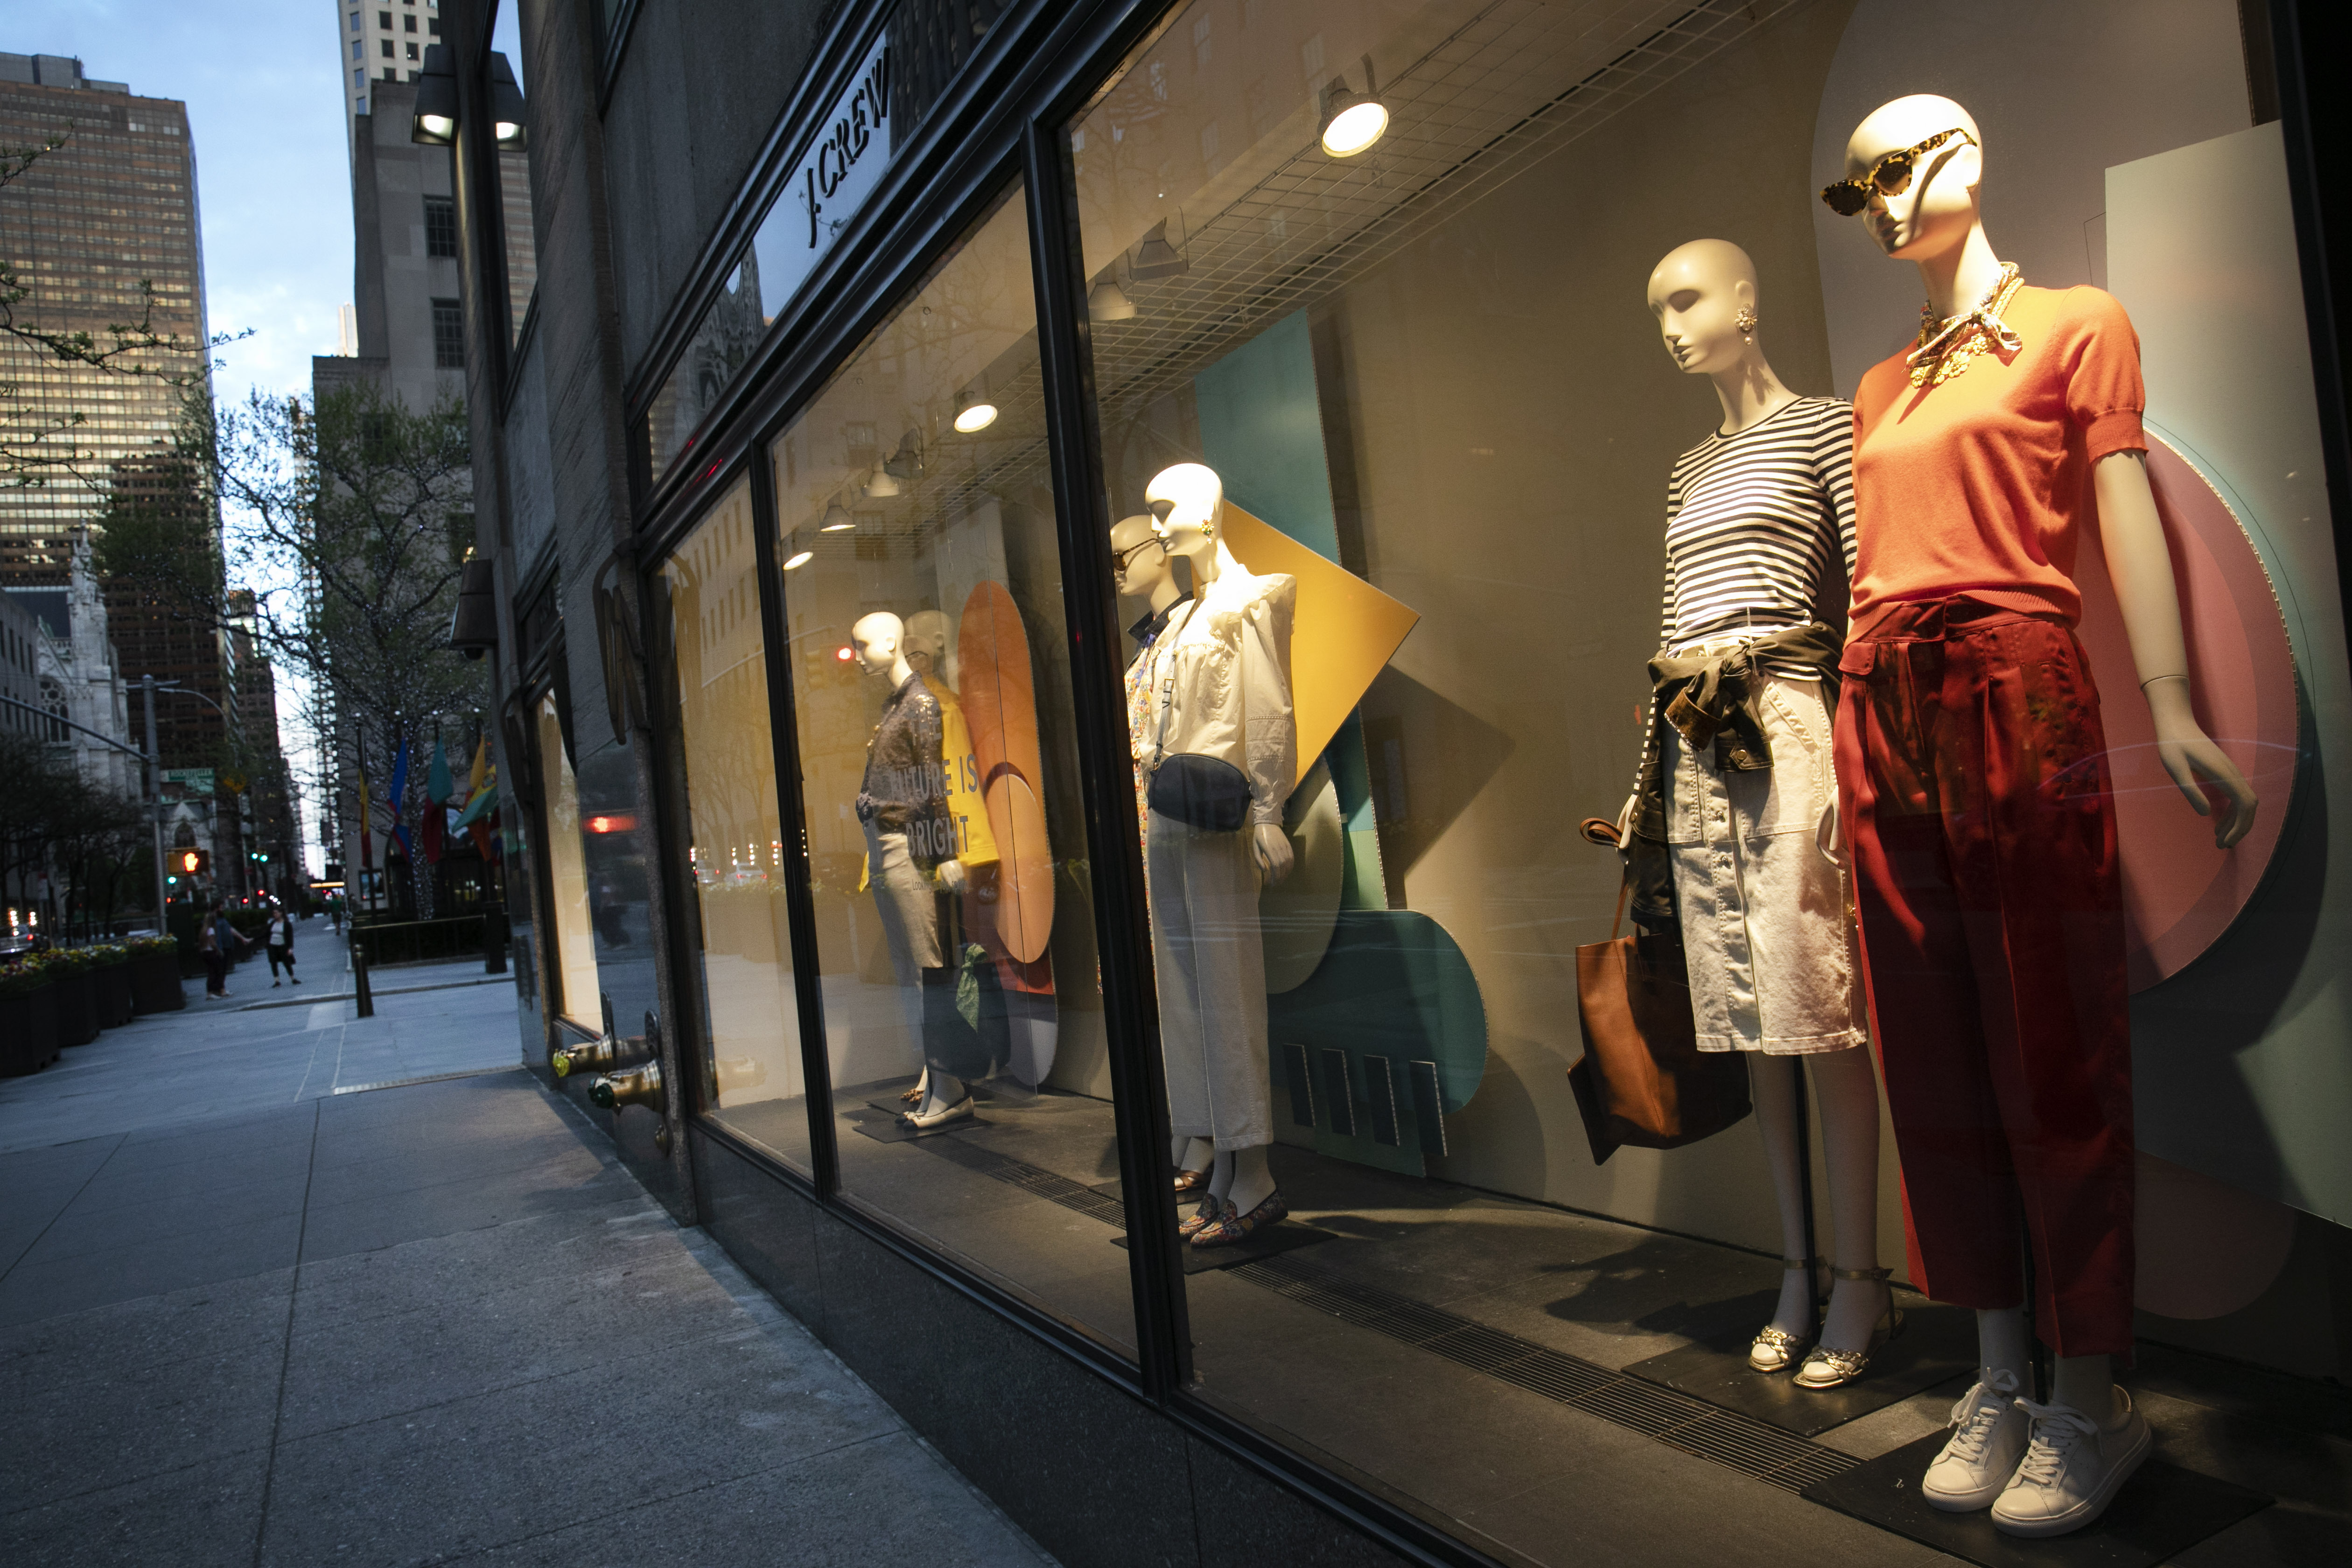 Window display at a J Crew store overlooks a quiet Rockefeller Center, in New York. On April 30, the company announced it would apply for bankruptcy protection amidst the COVID-19 pandemicVirus Outbreak J Crew, New York, United States - 02 May 2020